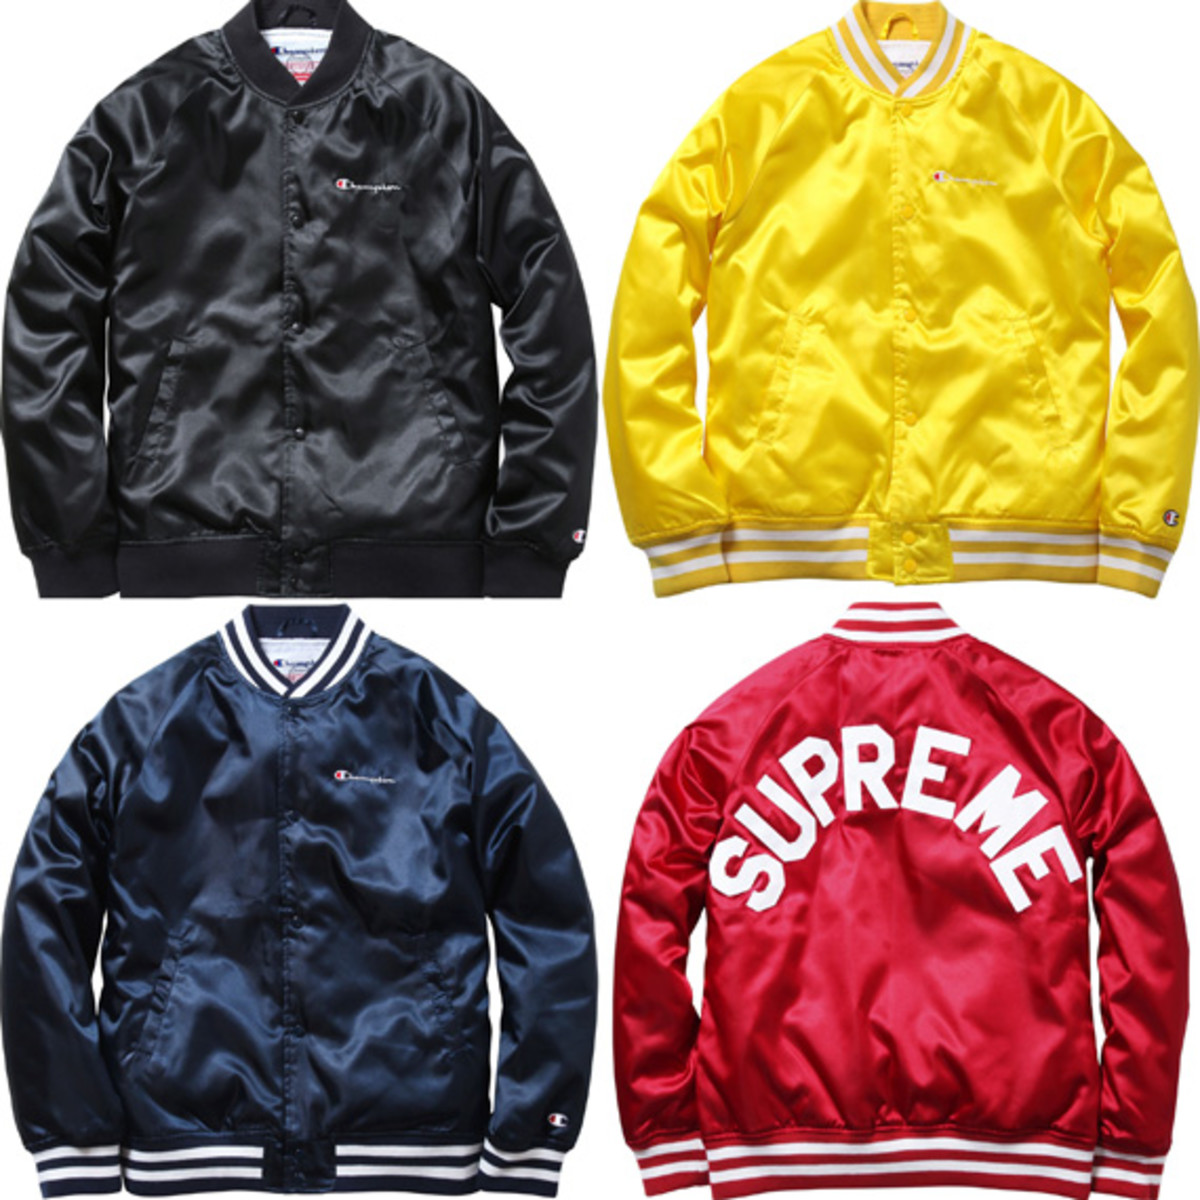 4b75d49a39433 ... a favorite among fans, the collaboration between Supreme and Champion  is back for another season this spring with the Supreme x Champion Satin  Jacket.